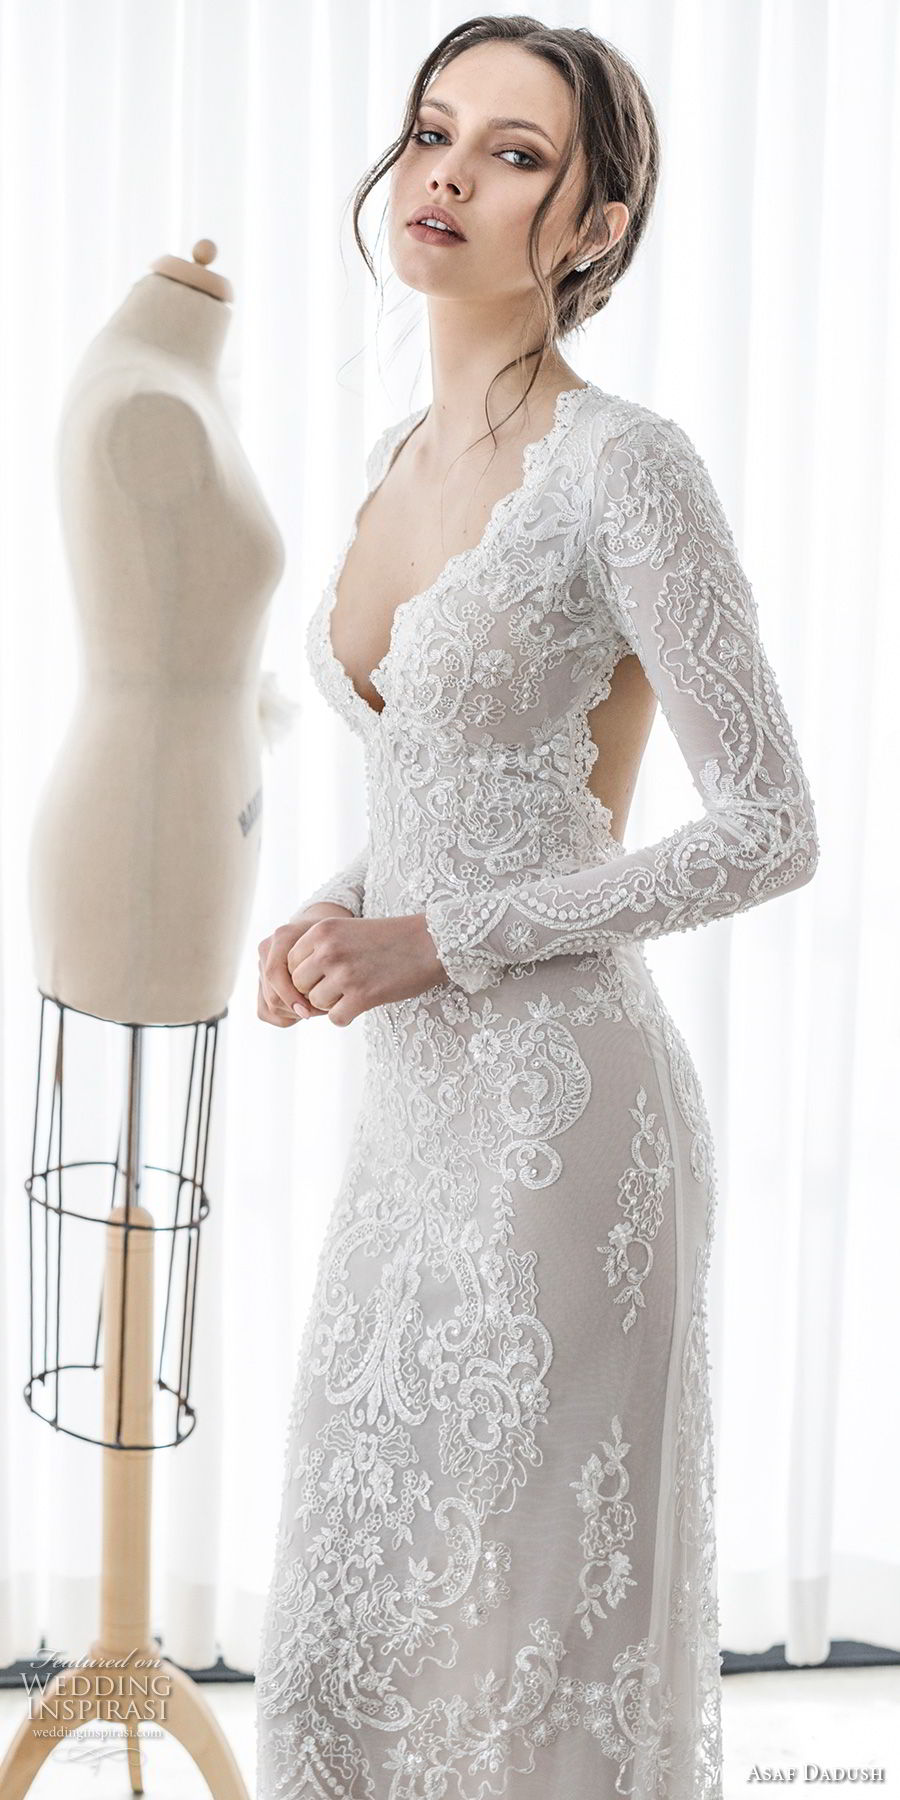 asaf dadush 2017 bridal long sleeves deep v sweetheart neckline full embellishment sexy elegant sheath wedding dress keyhole back sweep train (06) mv